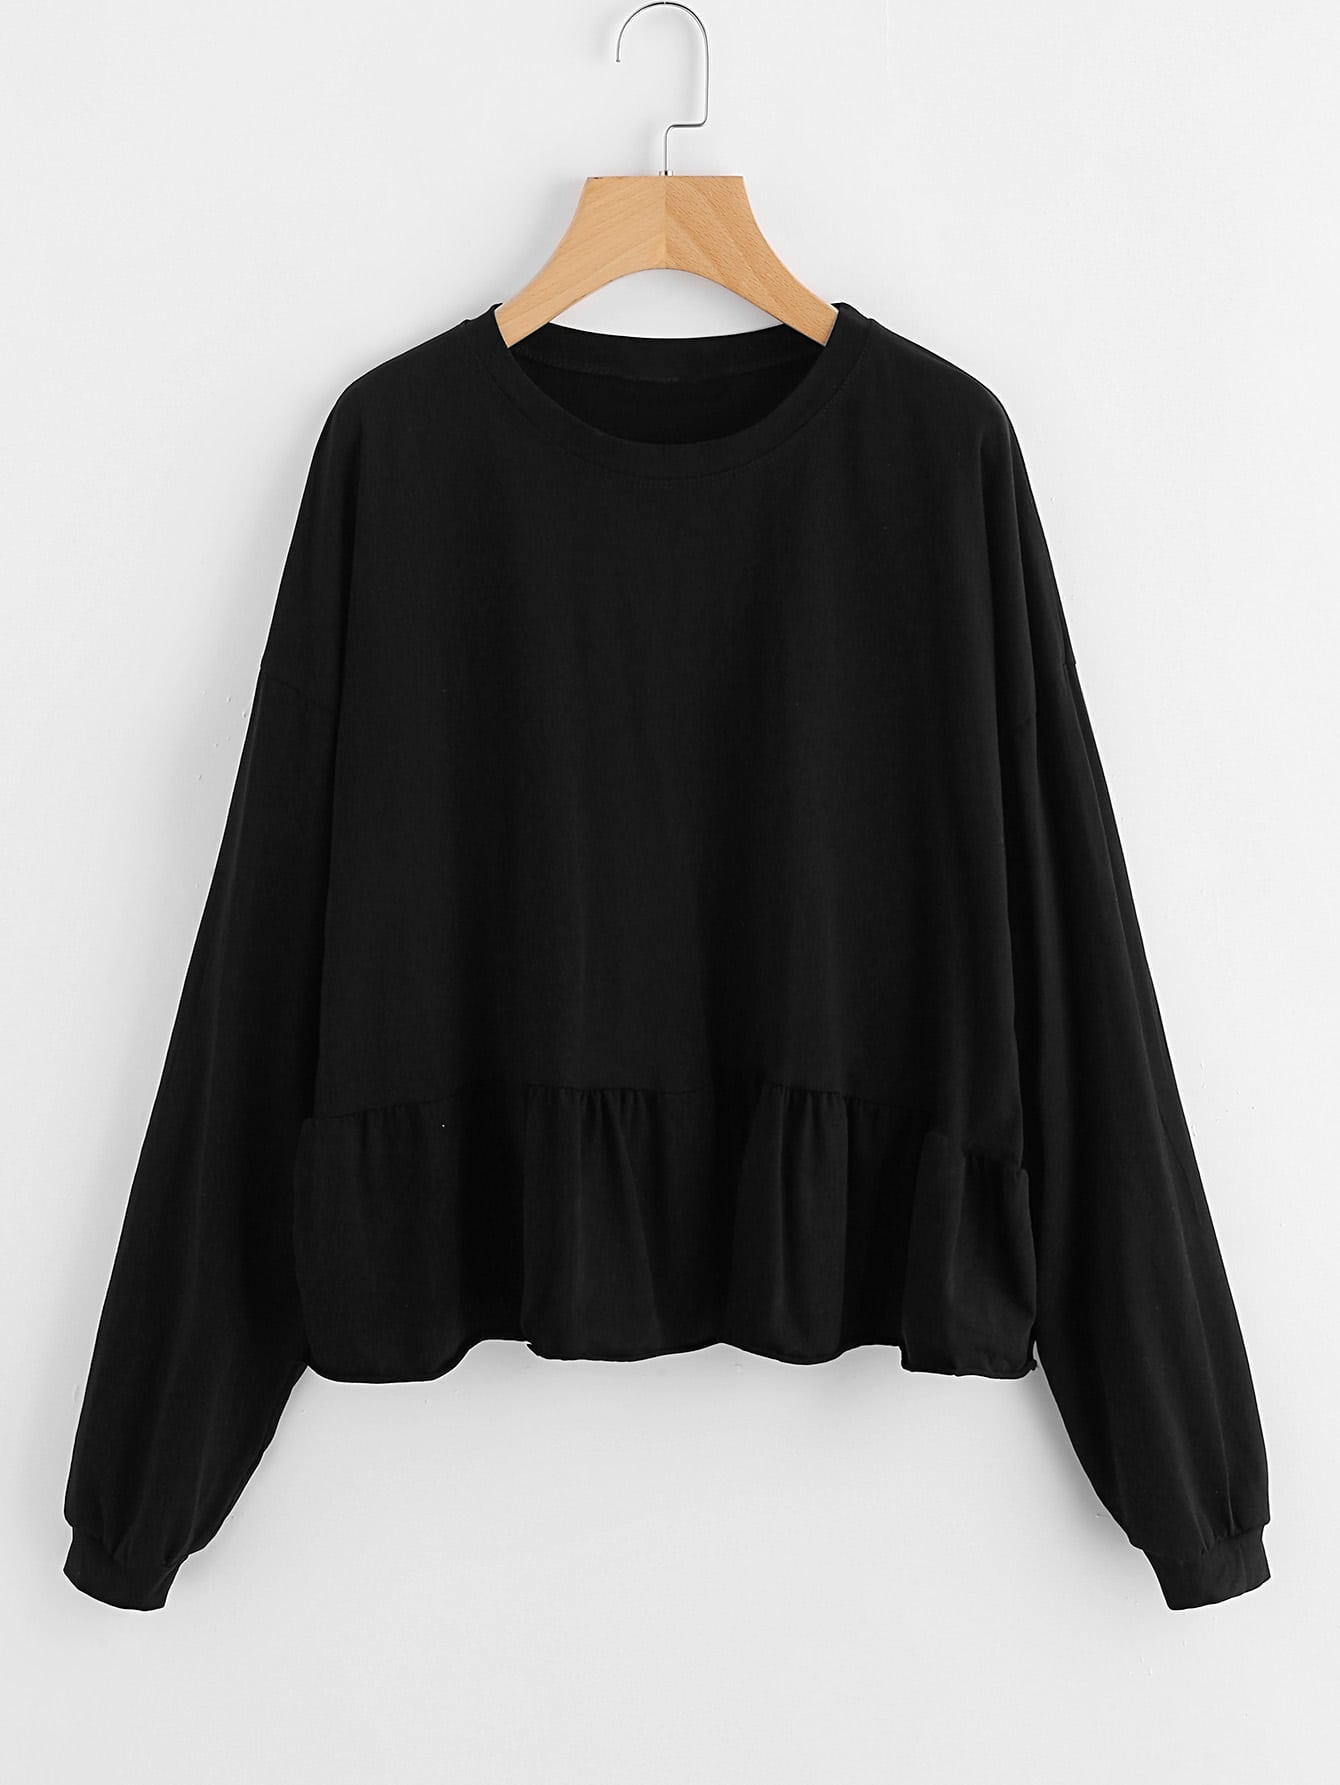 Drop Shoulder Frill Hem Batwing Sweatshirt zip back frill neck and hem sweatshirt